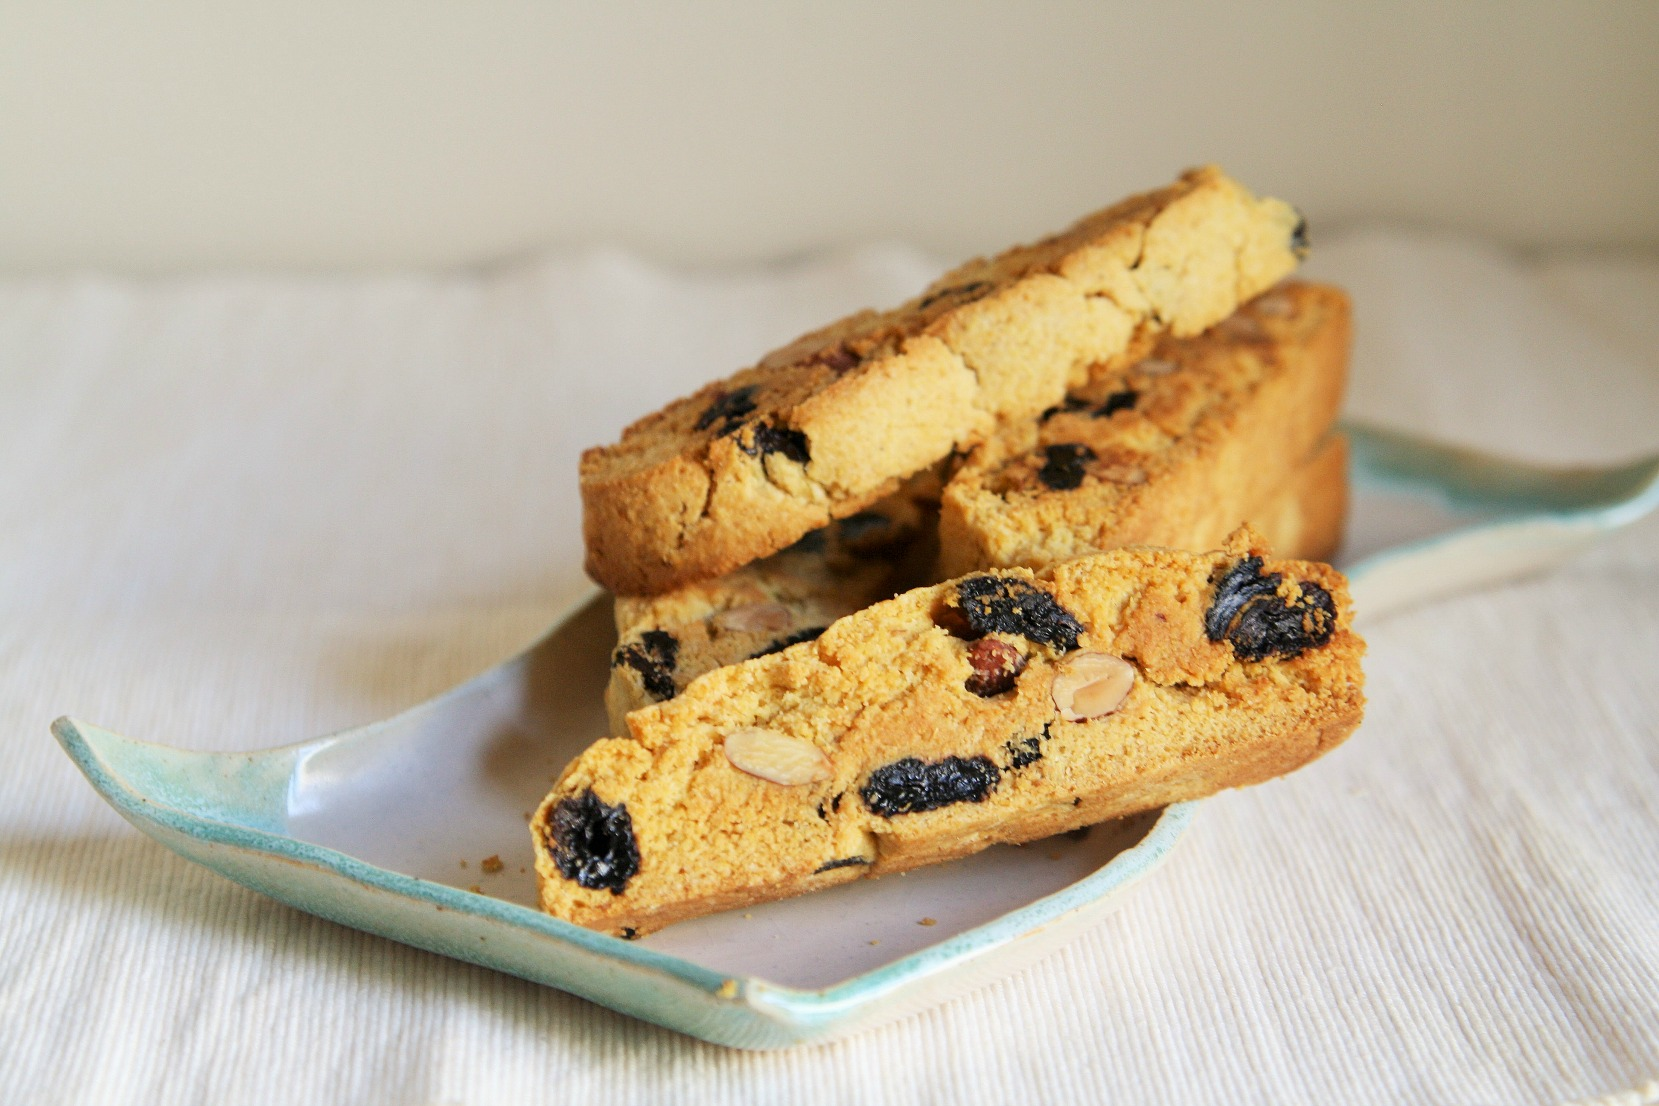 cornmeal-honey-biscotti-3